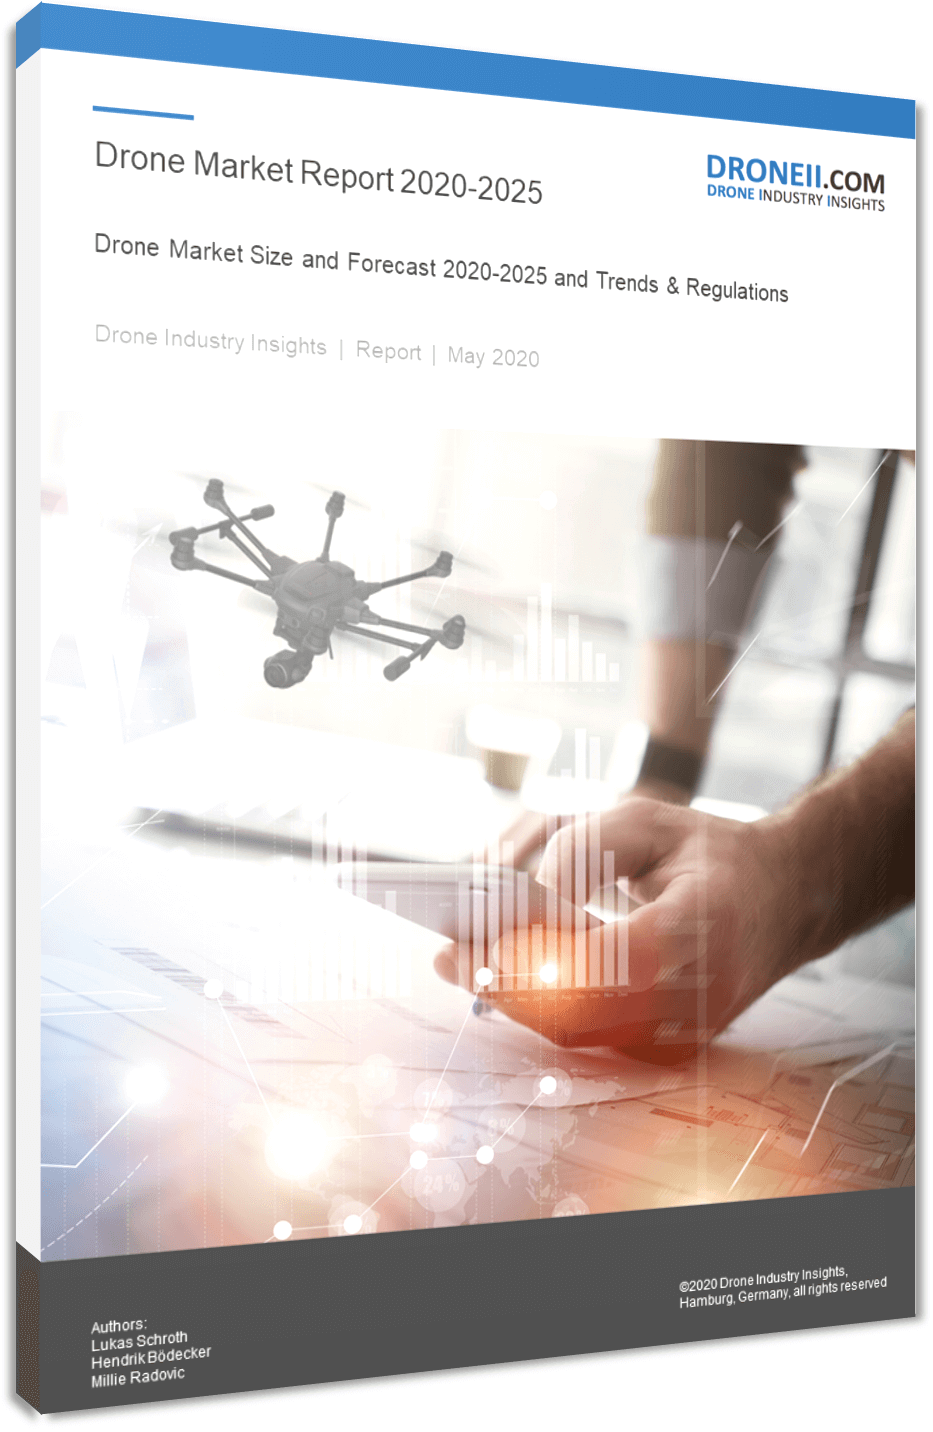 Drone Market Report Title Picture 3D Shadow